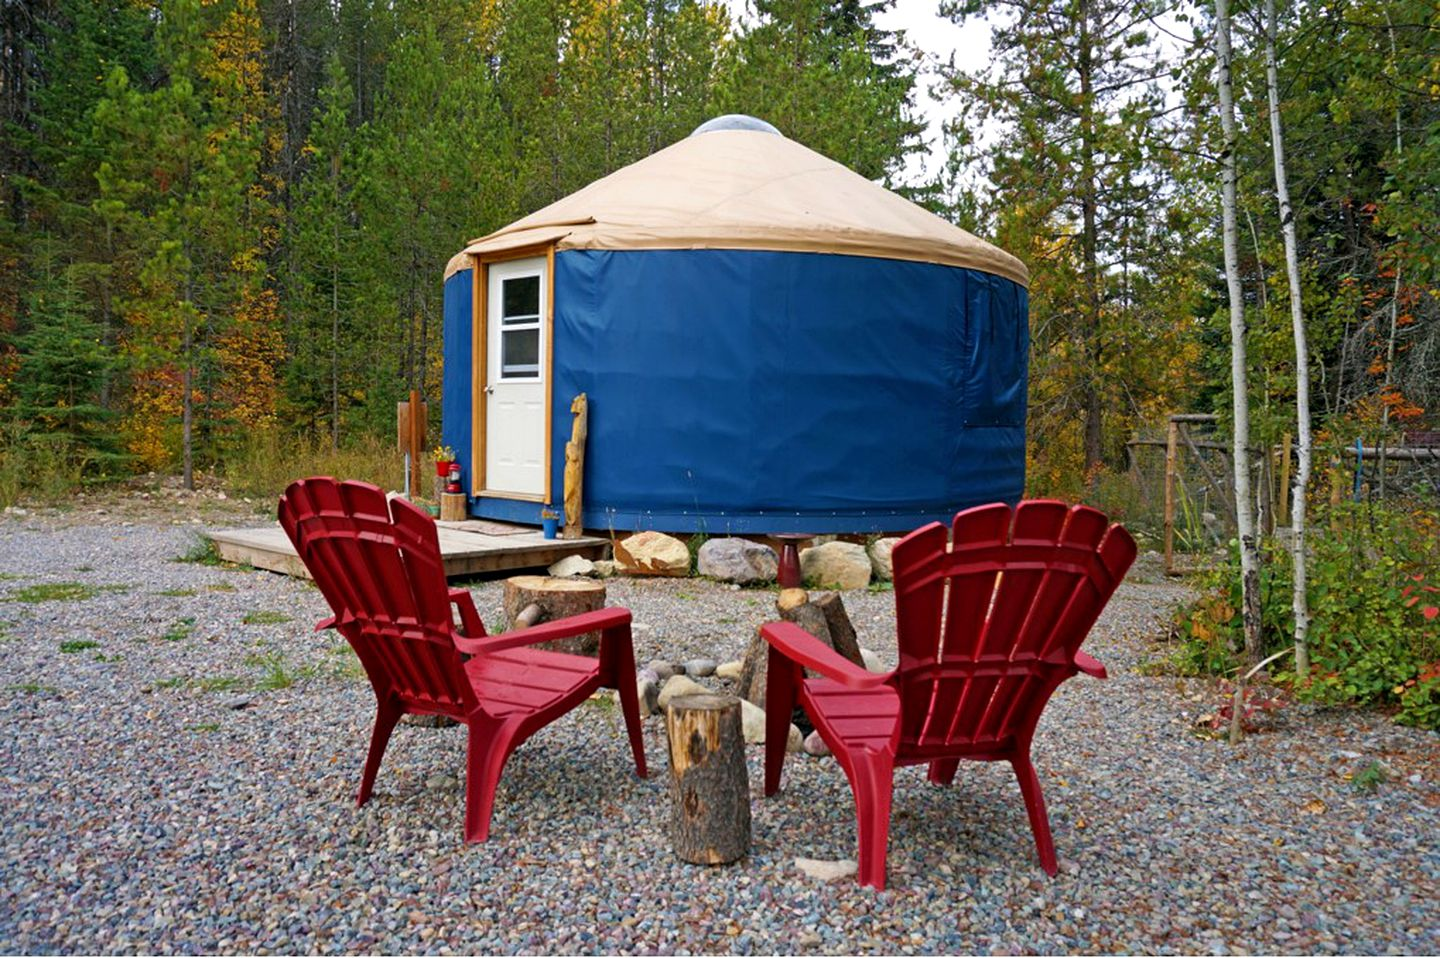 Pet-friendly yurts in Montana